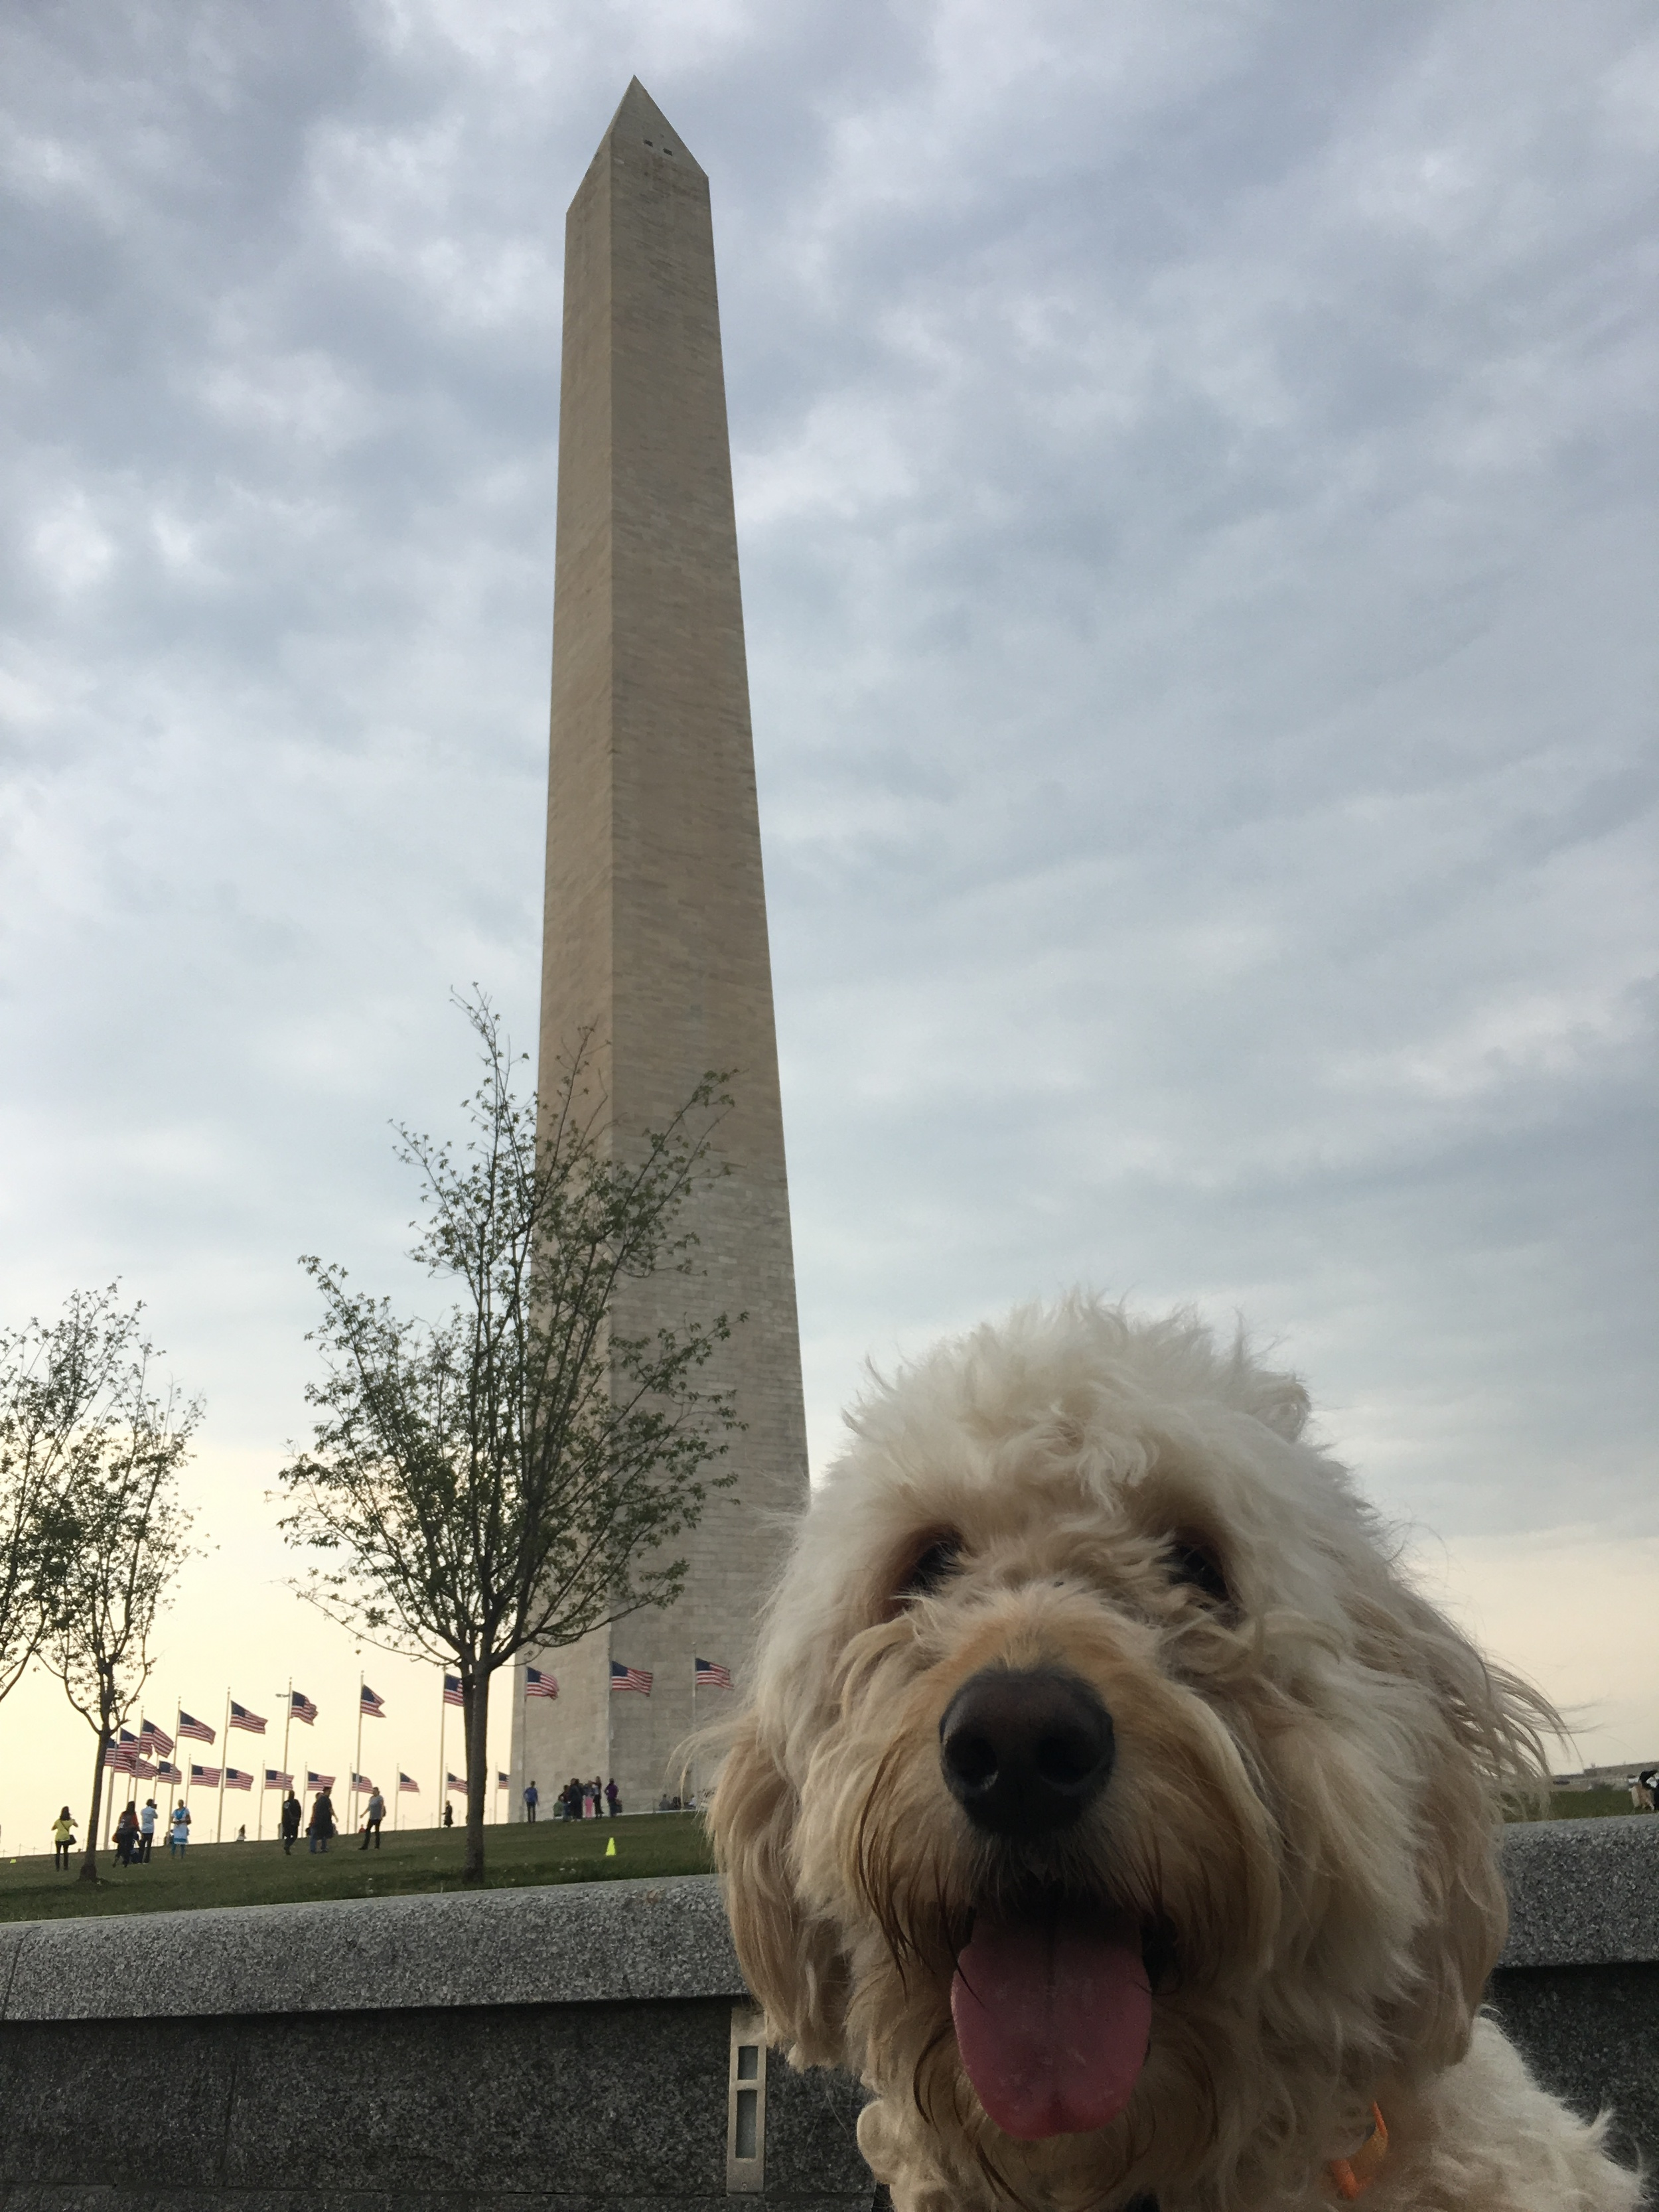 Costello visited all of the monuments at the National Mall with us in D.C. And he got plenty of attention for doing it, too. Here he is at the Washington Monument.